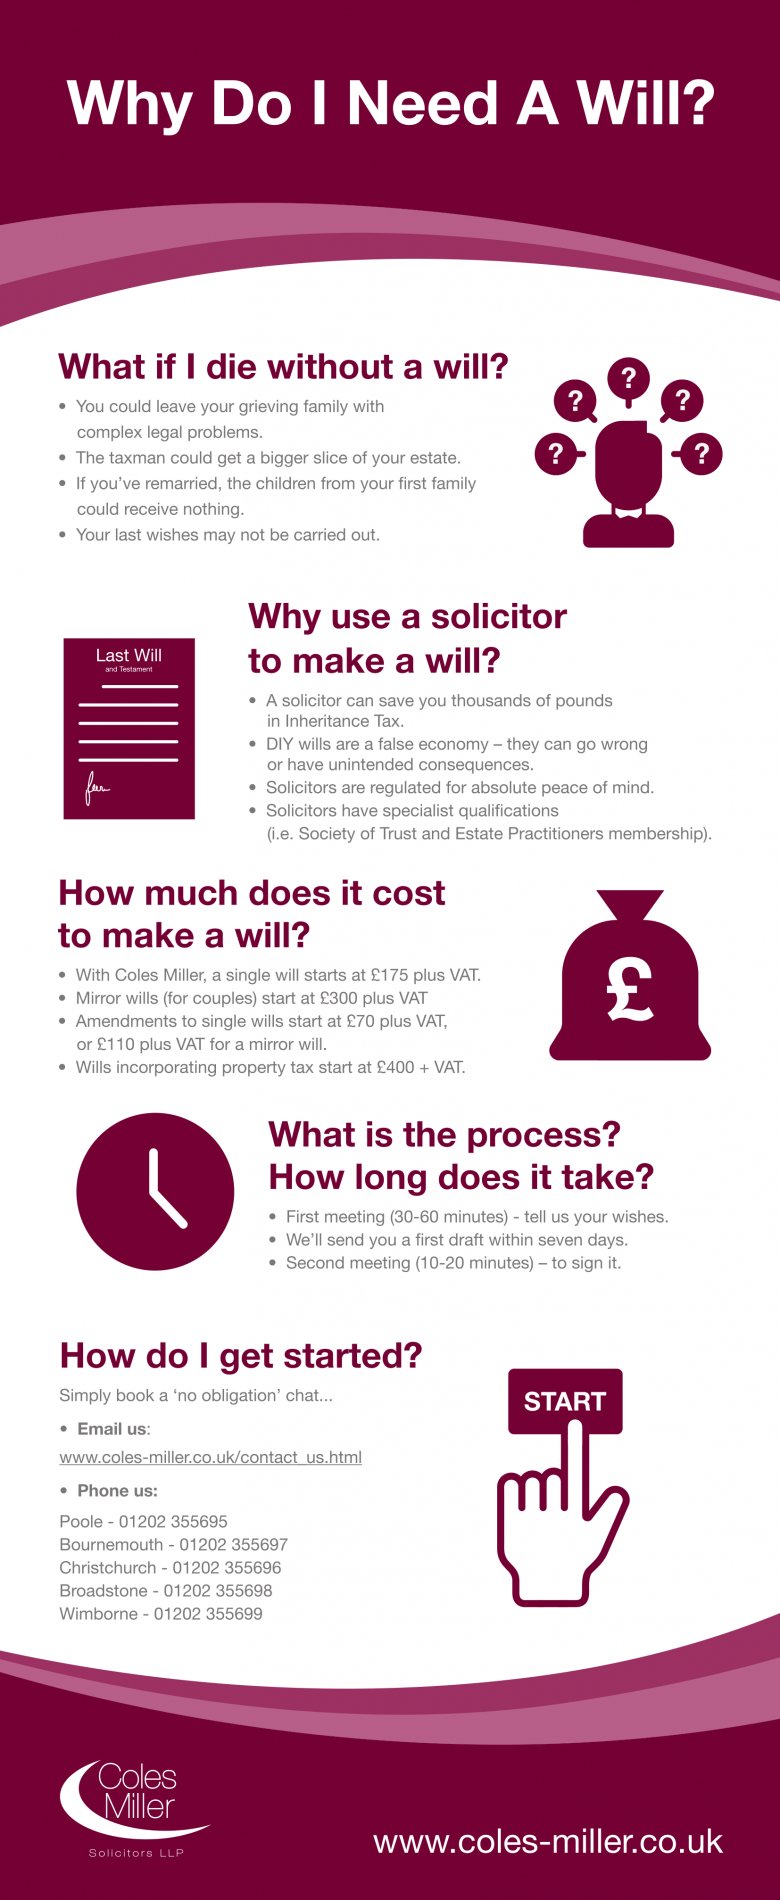 Why Do I Need A Will Infographic